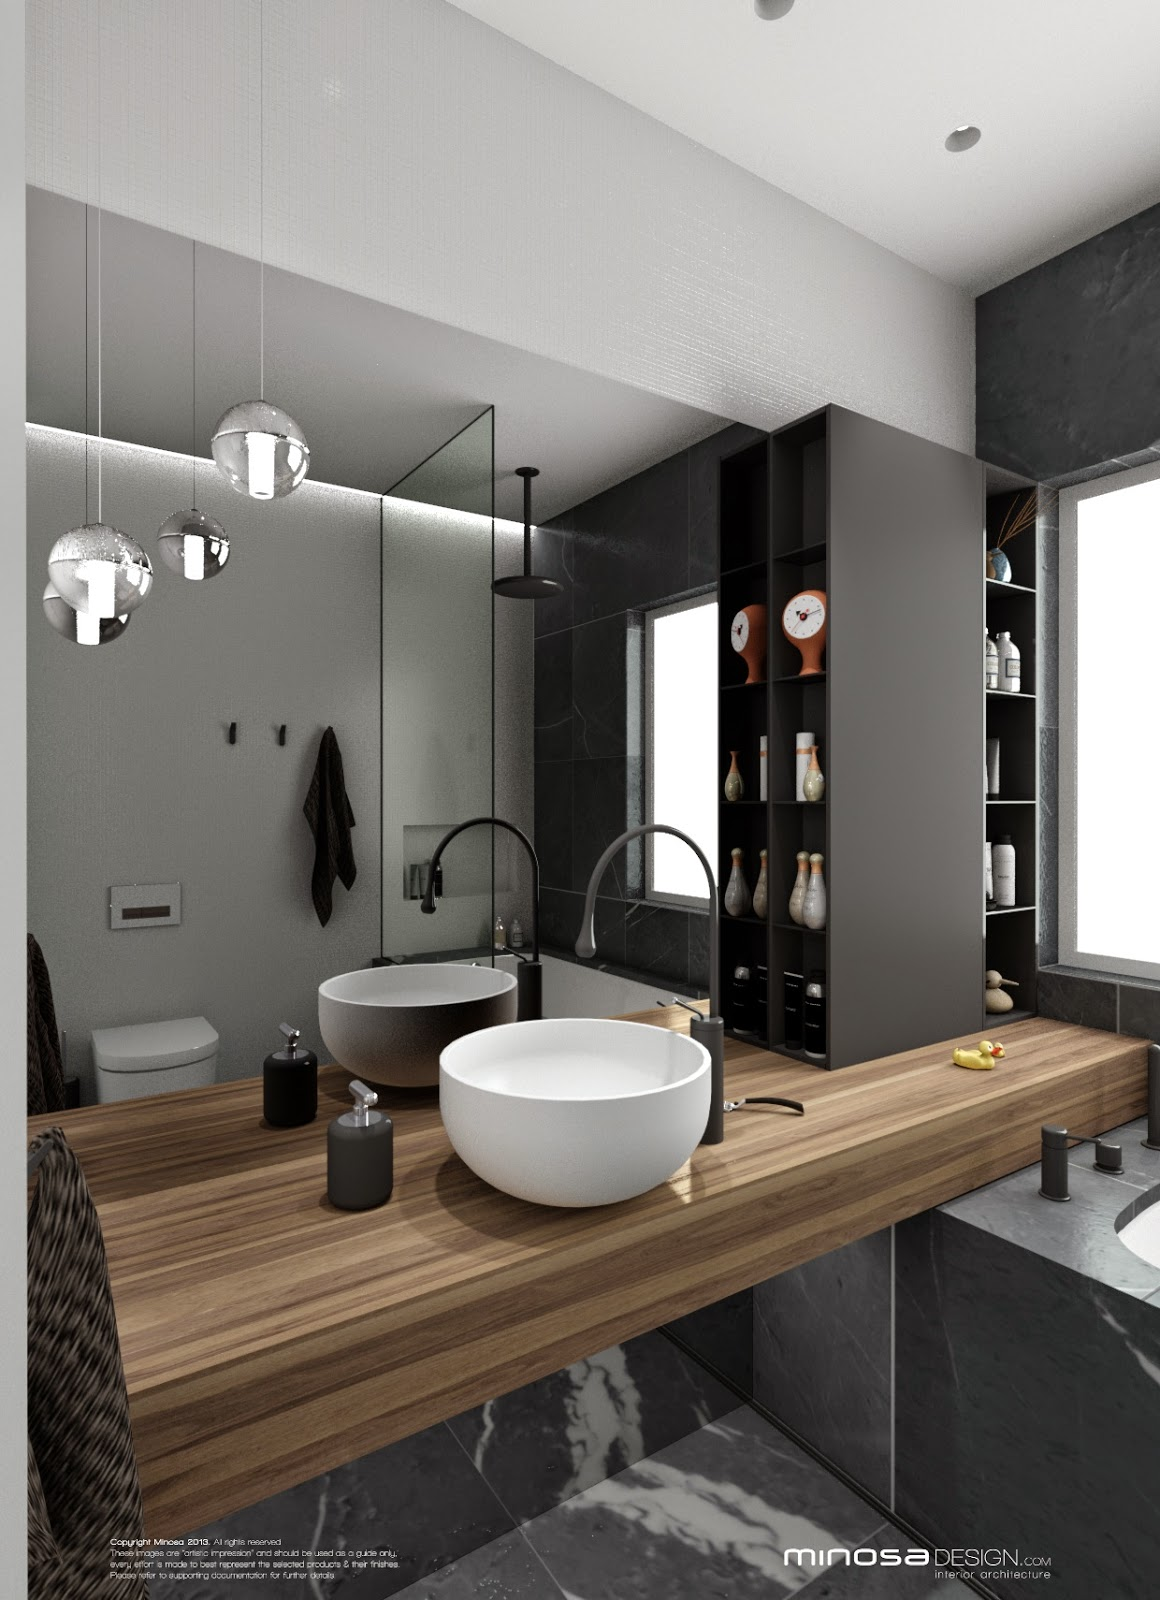 Minosa bathroom design small space feels large for Modern bathroom design ideas small spaces